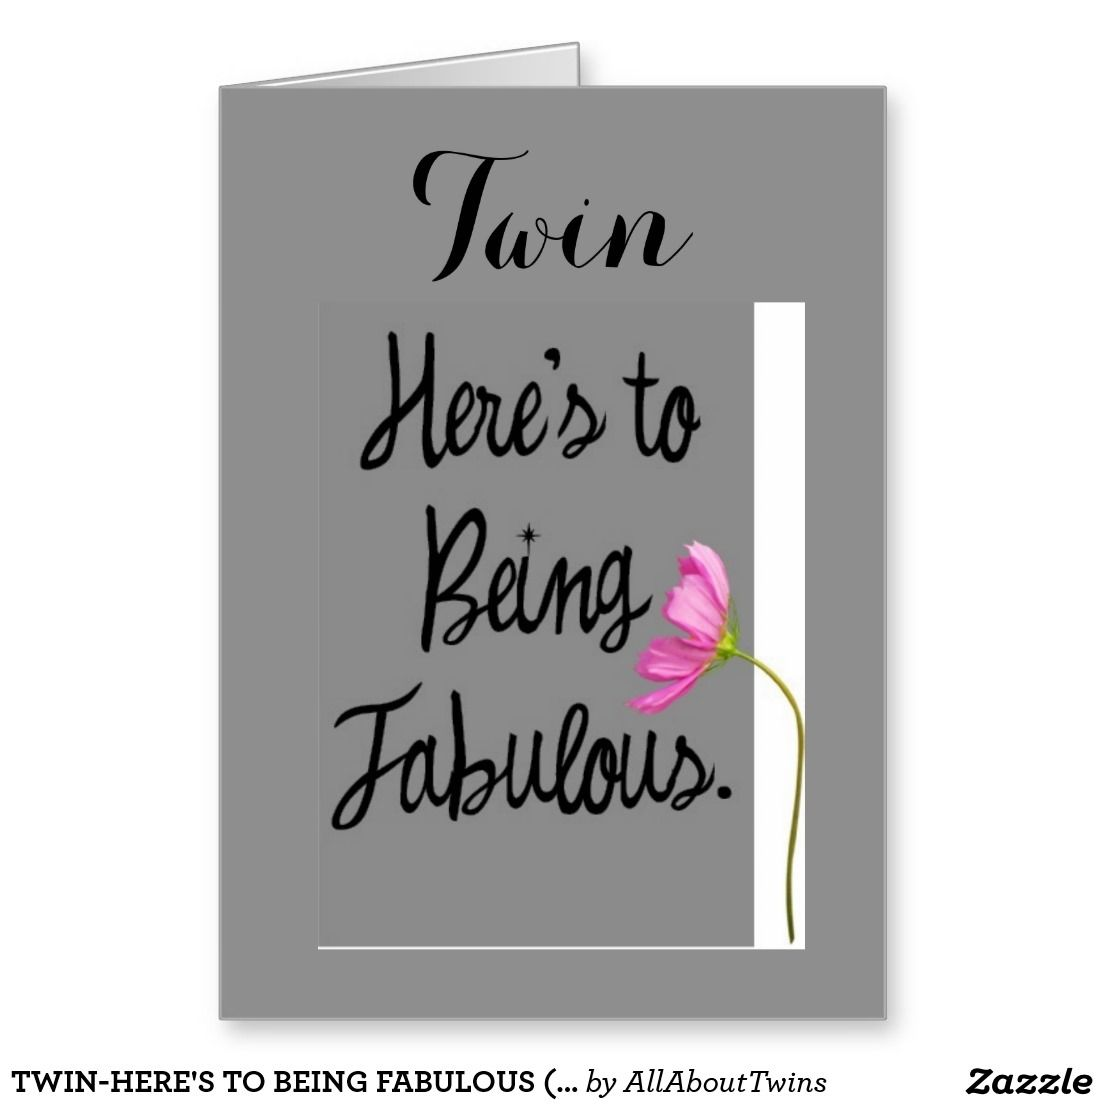 Twin heres to being fabulous birthday wishes greeting card twin heres to being fabulous birthday wishes greeting card kristyandbryce Gallery